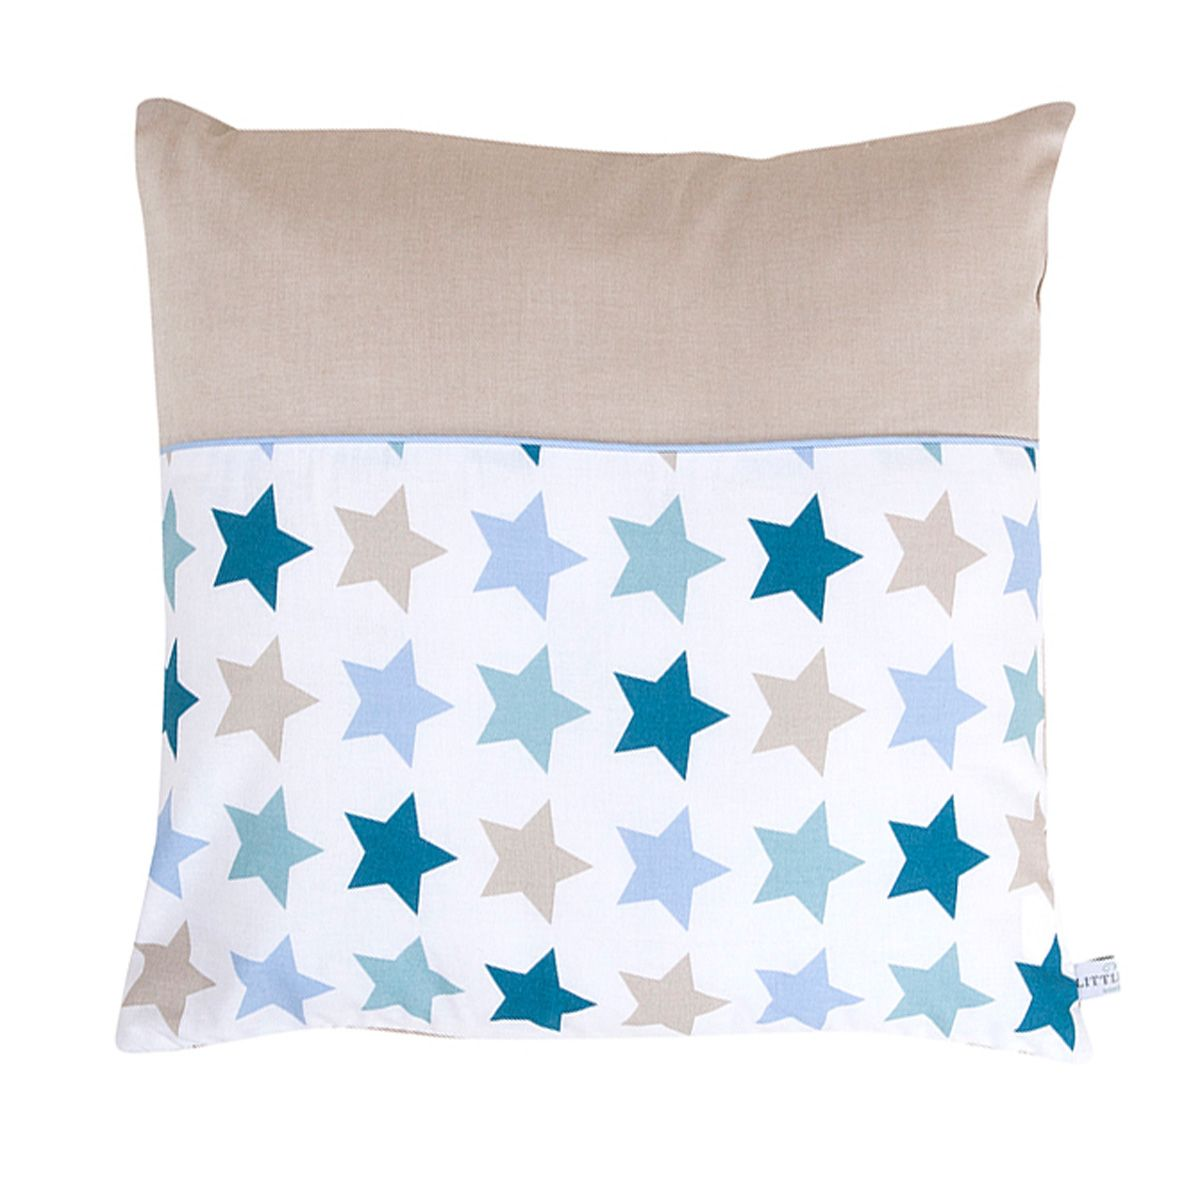 kissen mixed stars mint 40x40cm von little dutch kaufen. Black Bedroom Furniture Sets. Home Design Ideas